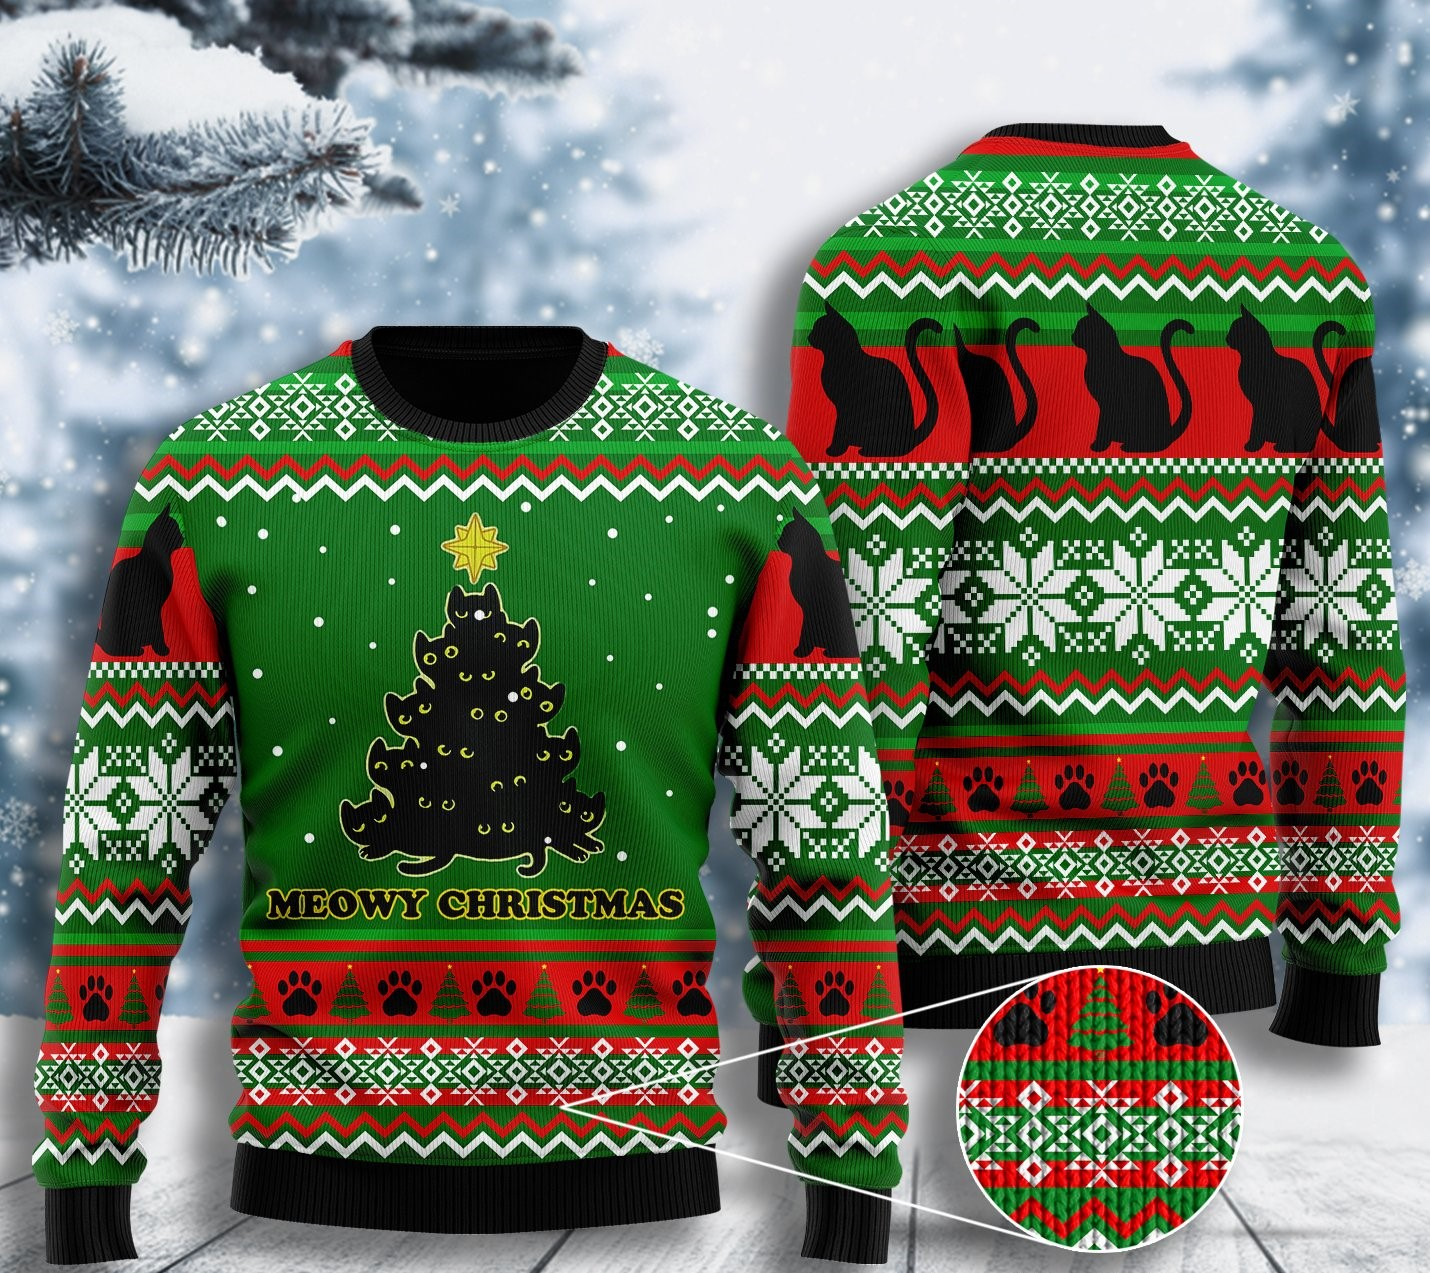 black cat meowy christmas tree all over printed ugly christmas sweater 2